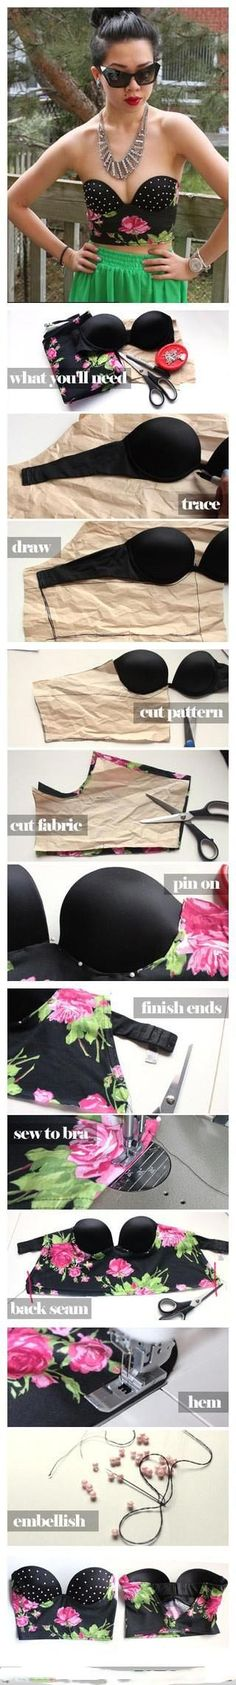 DIY Bra Mod. I wouldn't wear it as a 'top' but I  love the idea as a bra :) I can't get enough of the super cute style & the super comfortable extra wide band on this type of bra - but they're not readily available in a lot of styles here maybe 1 or 2 designs in an entire department store :s Definitely trying this :)